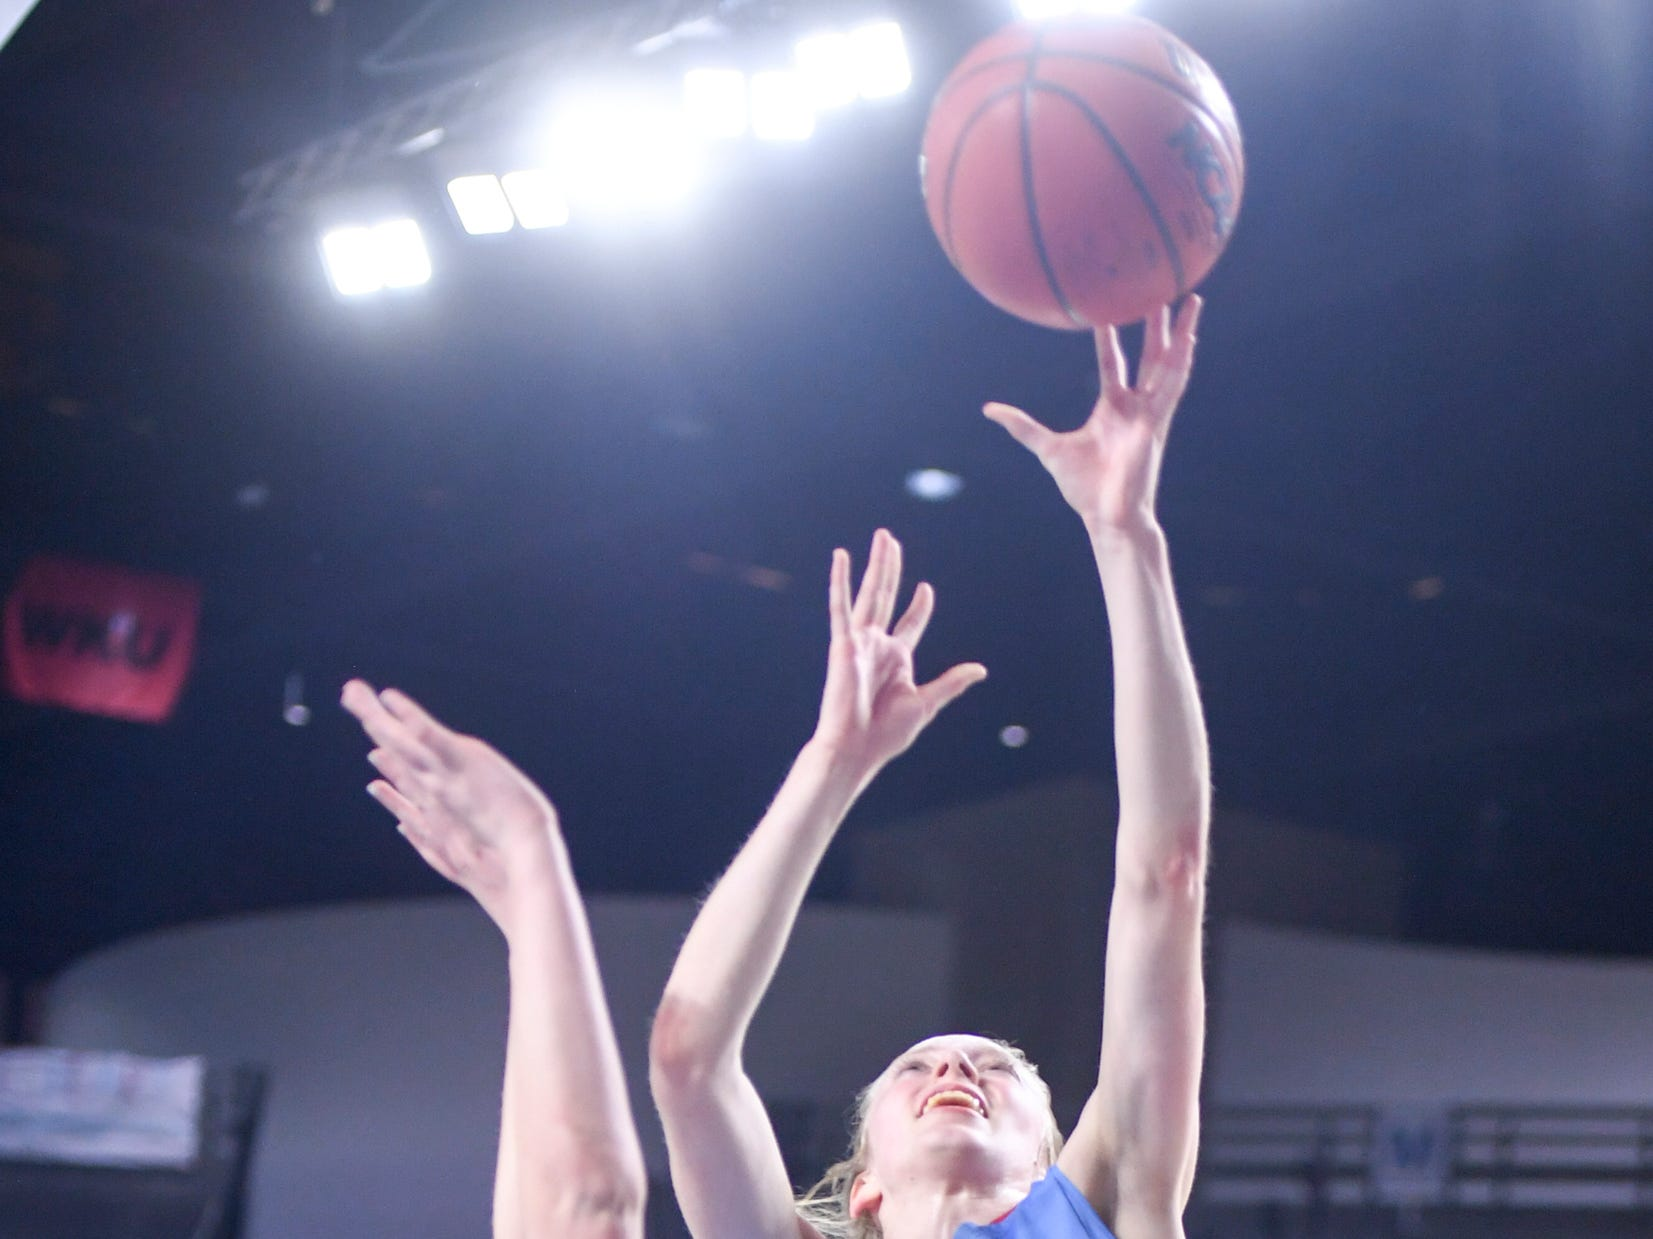 Gibson County's KJ White (32) goes up for a shot over Midway's Emily Cawood (22) during their Class A semifinal game, Friday, March 8, 2019, in  Murfreesboro.